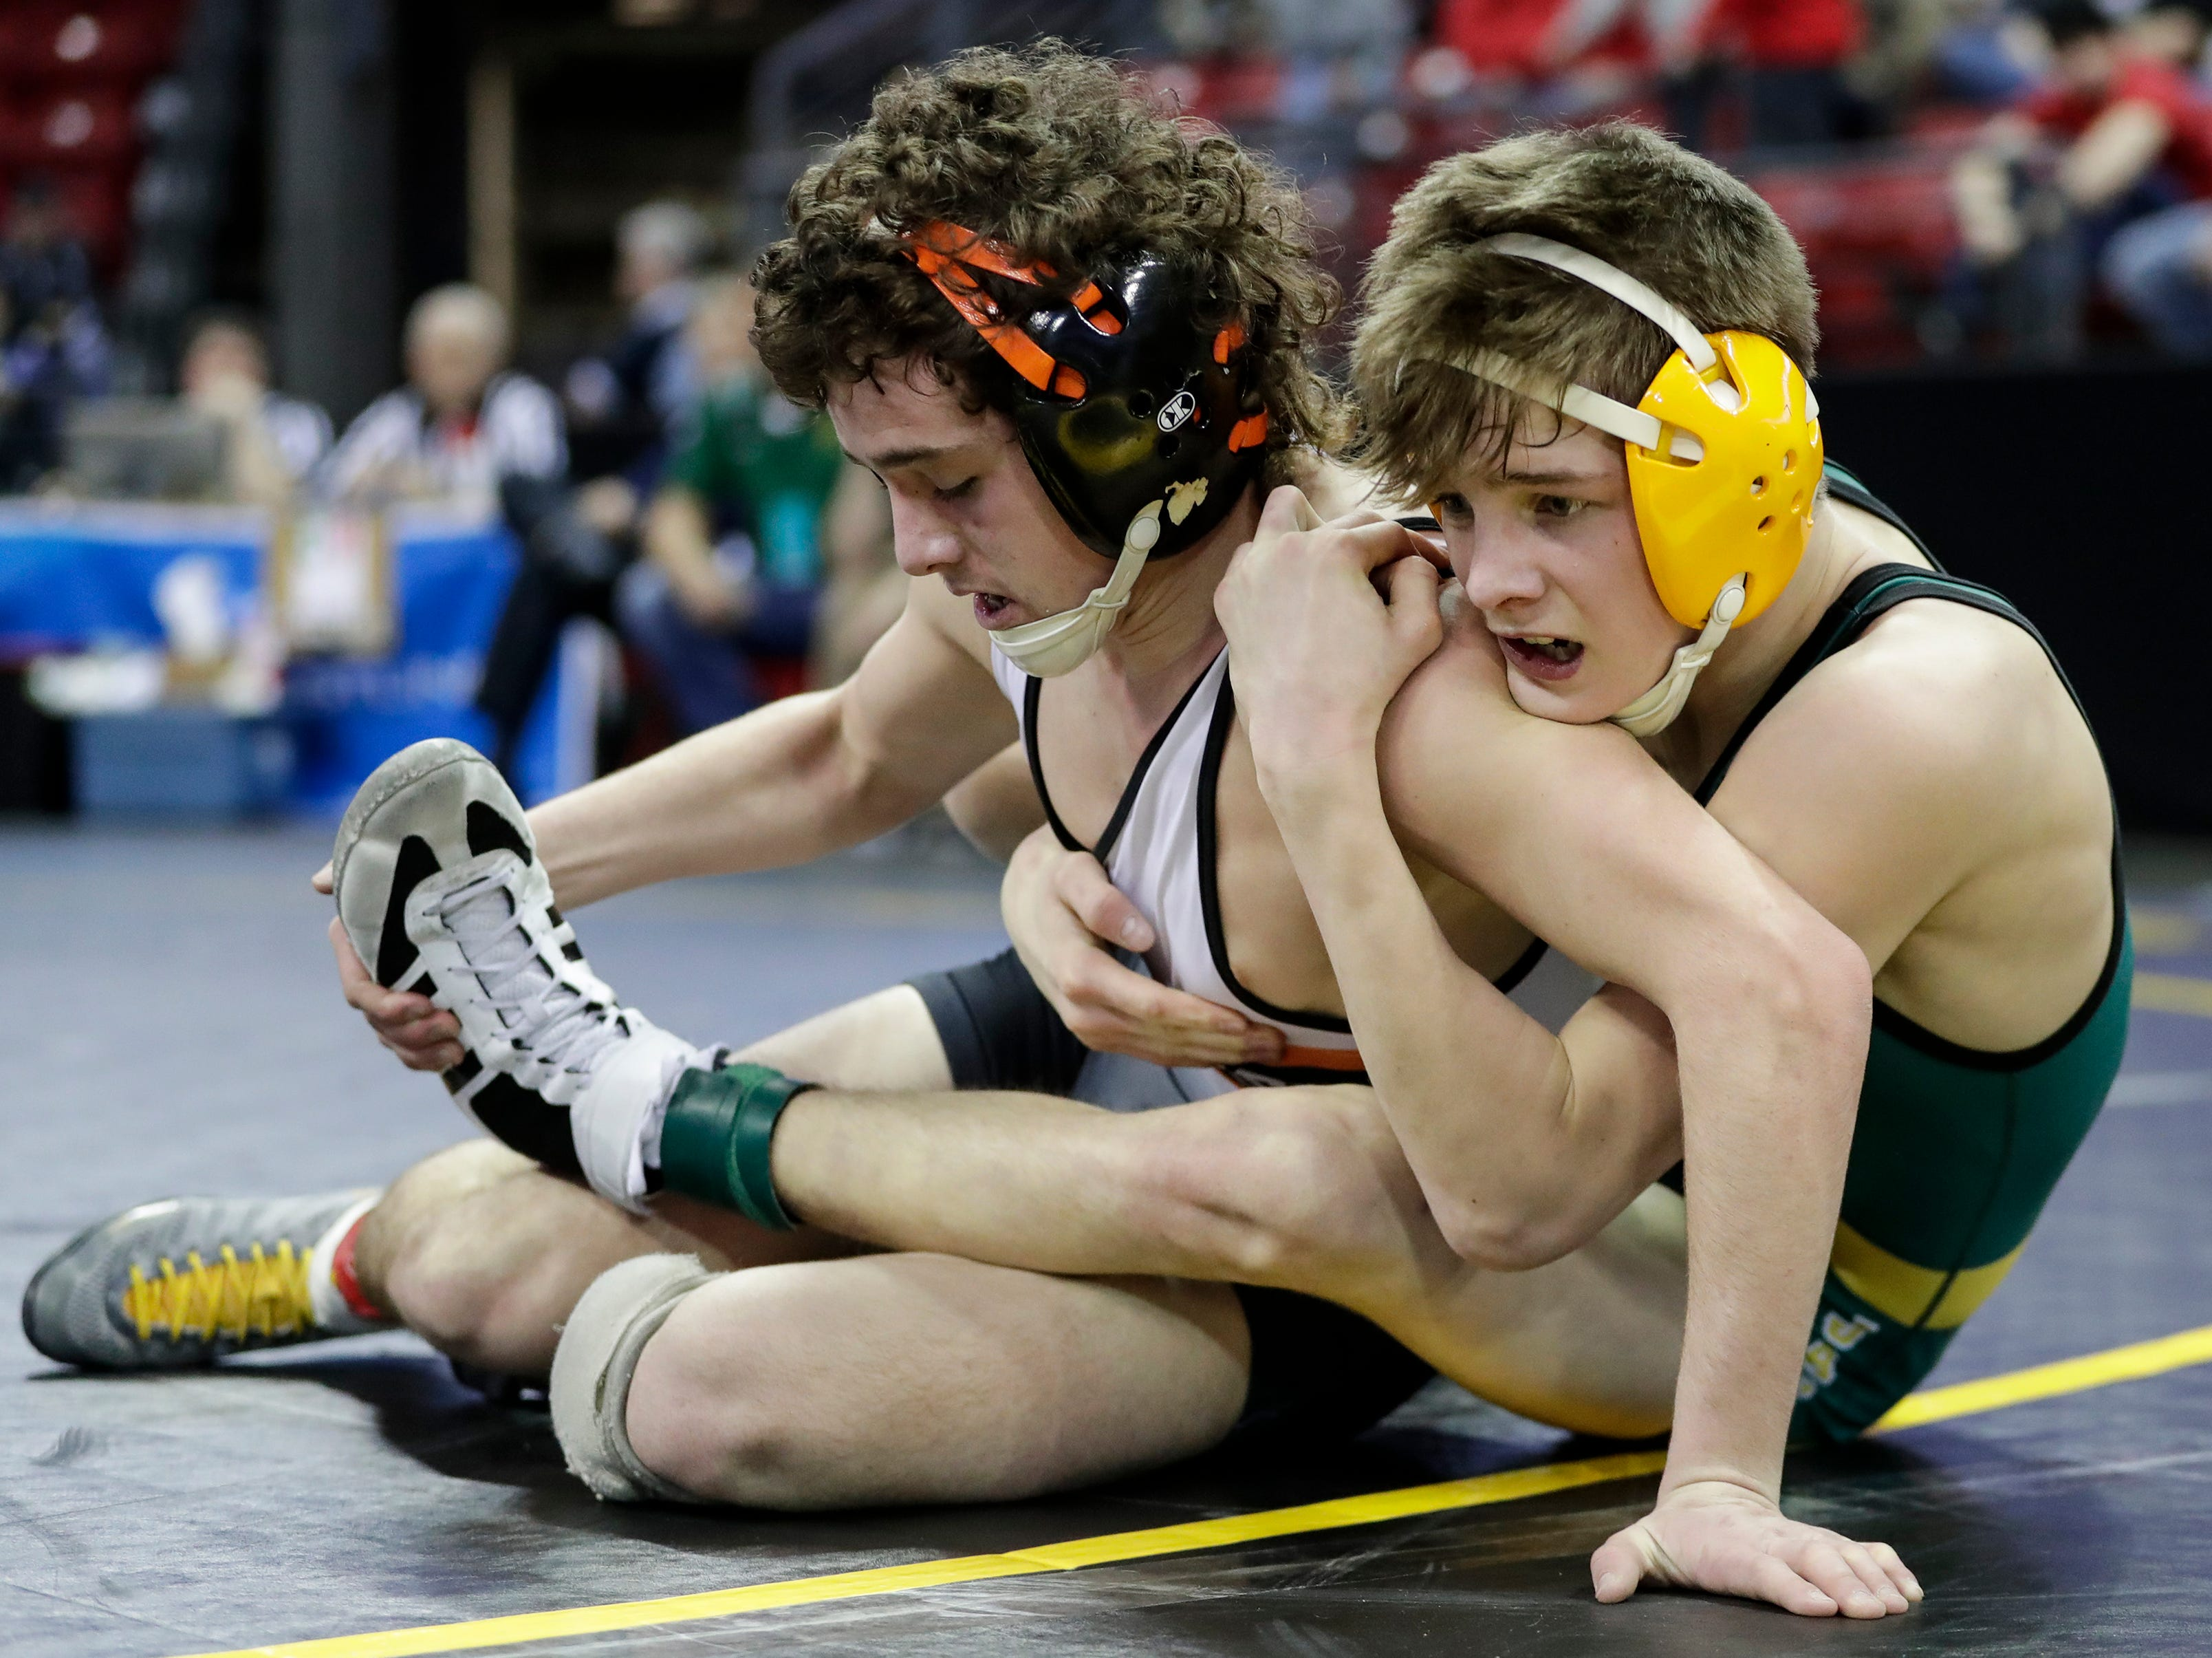 Ahwaubenon's Cody Minor wrestles Burlington's Jaden Bird in a Division 1 113-pound weight class quarterfinal match during the WIAA state individual wrestling tournament at the Kohl Center Thursday, February 21, 2019, in Madison, Wis.